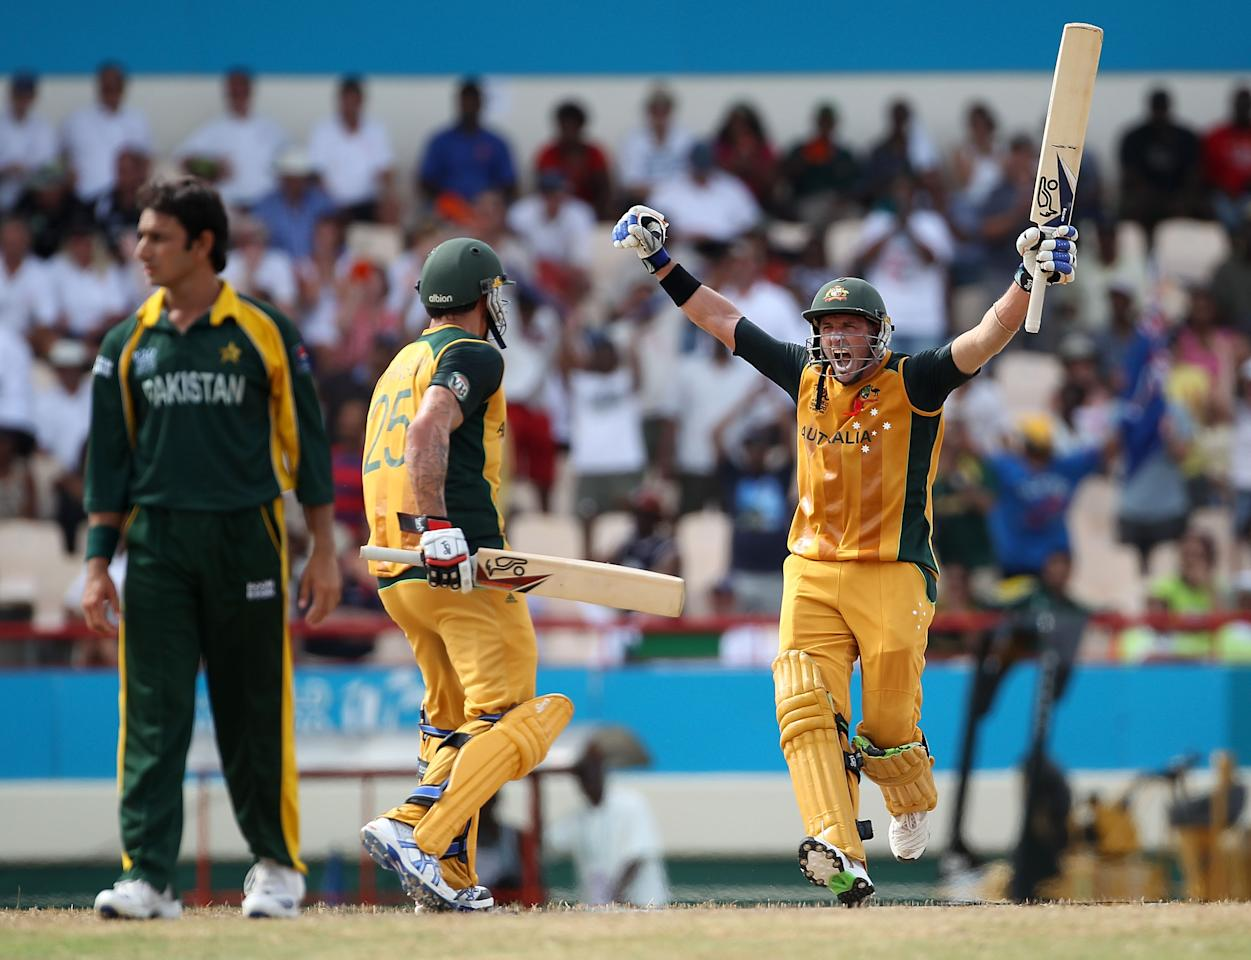 GROS ISLET, SAINT LUCIA - MAY 14:  Michael Hussey of Australia celebrates hitting the winning runs with Mitchell Johnson during the ICC World Twenty20 semi final between Australia and Pakistan at the Beausjour Cricket Ground on May 14, 2010 in Gros Islet, Saint Lucia.  (Photo by Clive Rose/Getty Images)